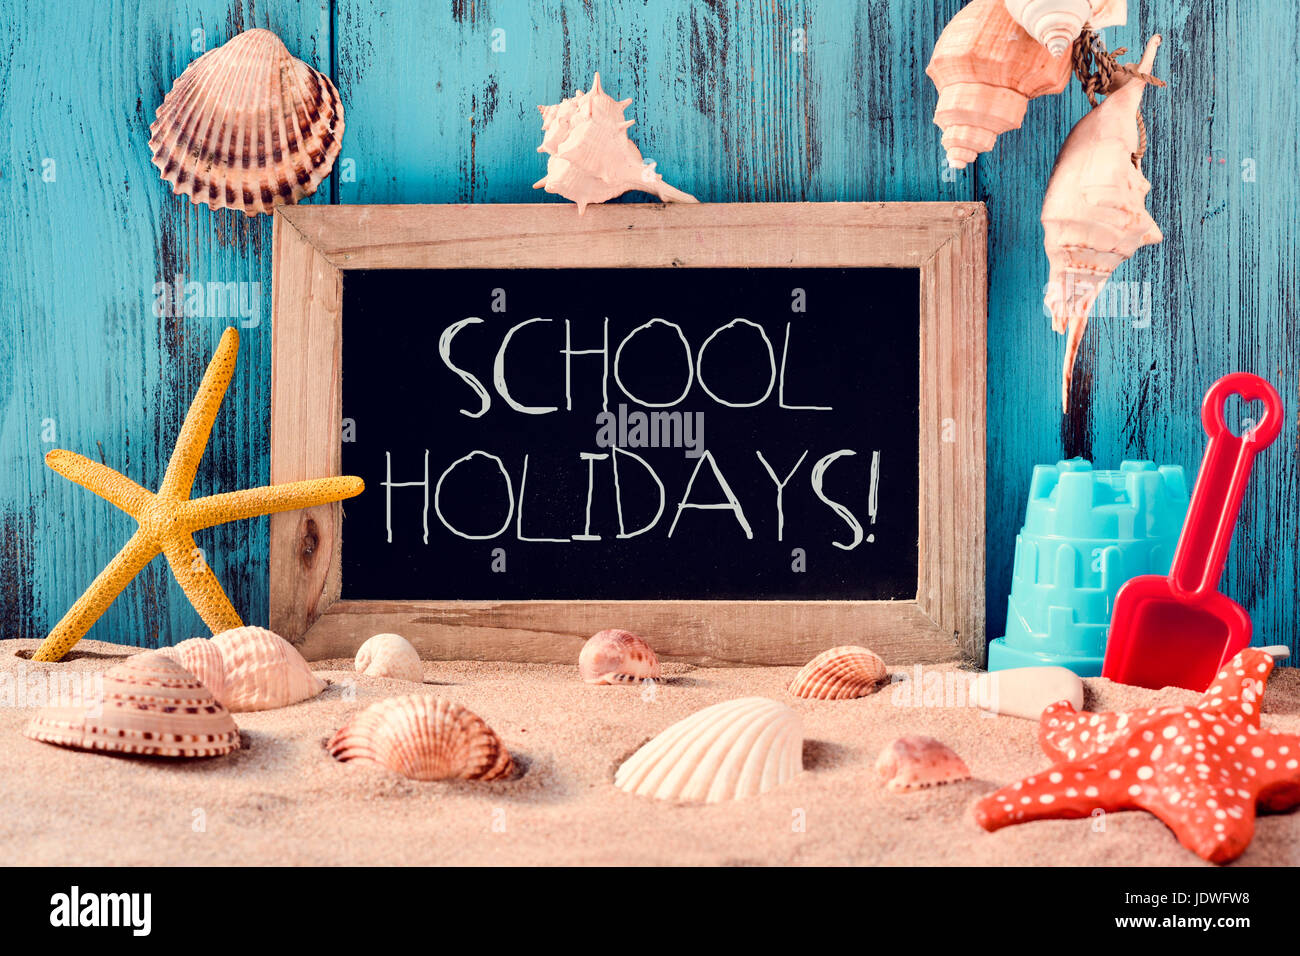 Recess Schools Out Stockfotos & Recess Schools Out Bilder - Alamy